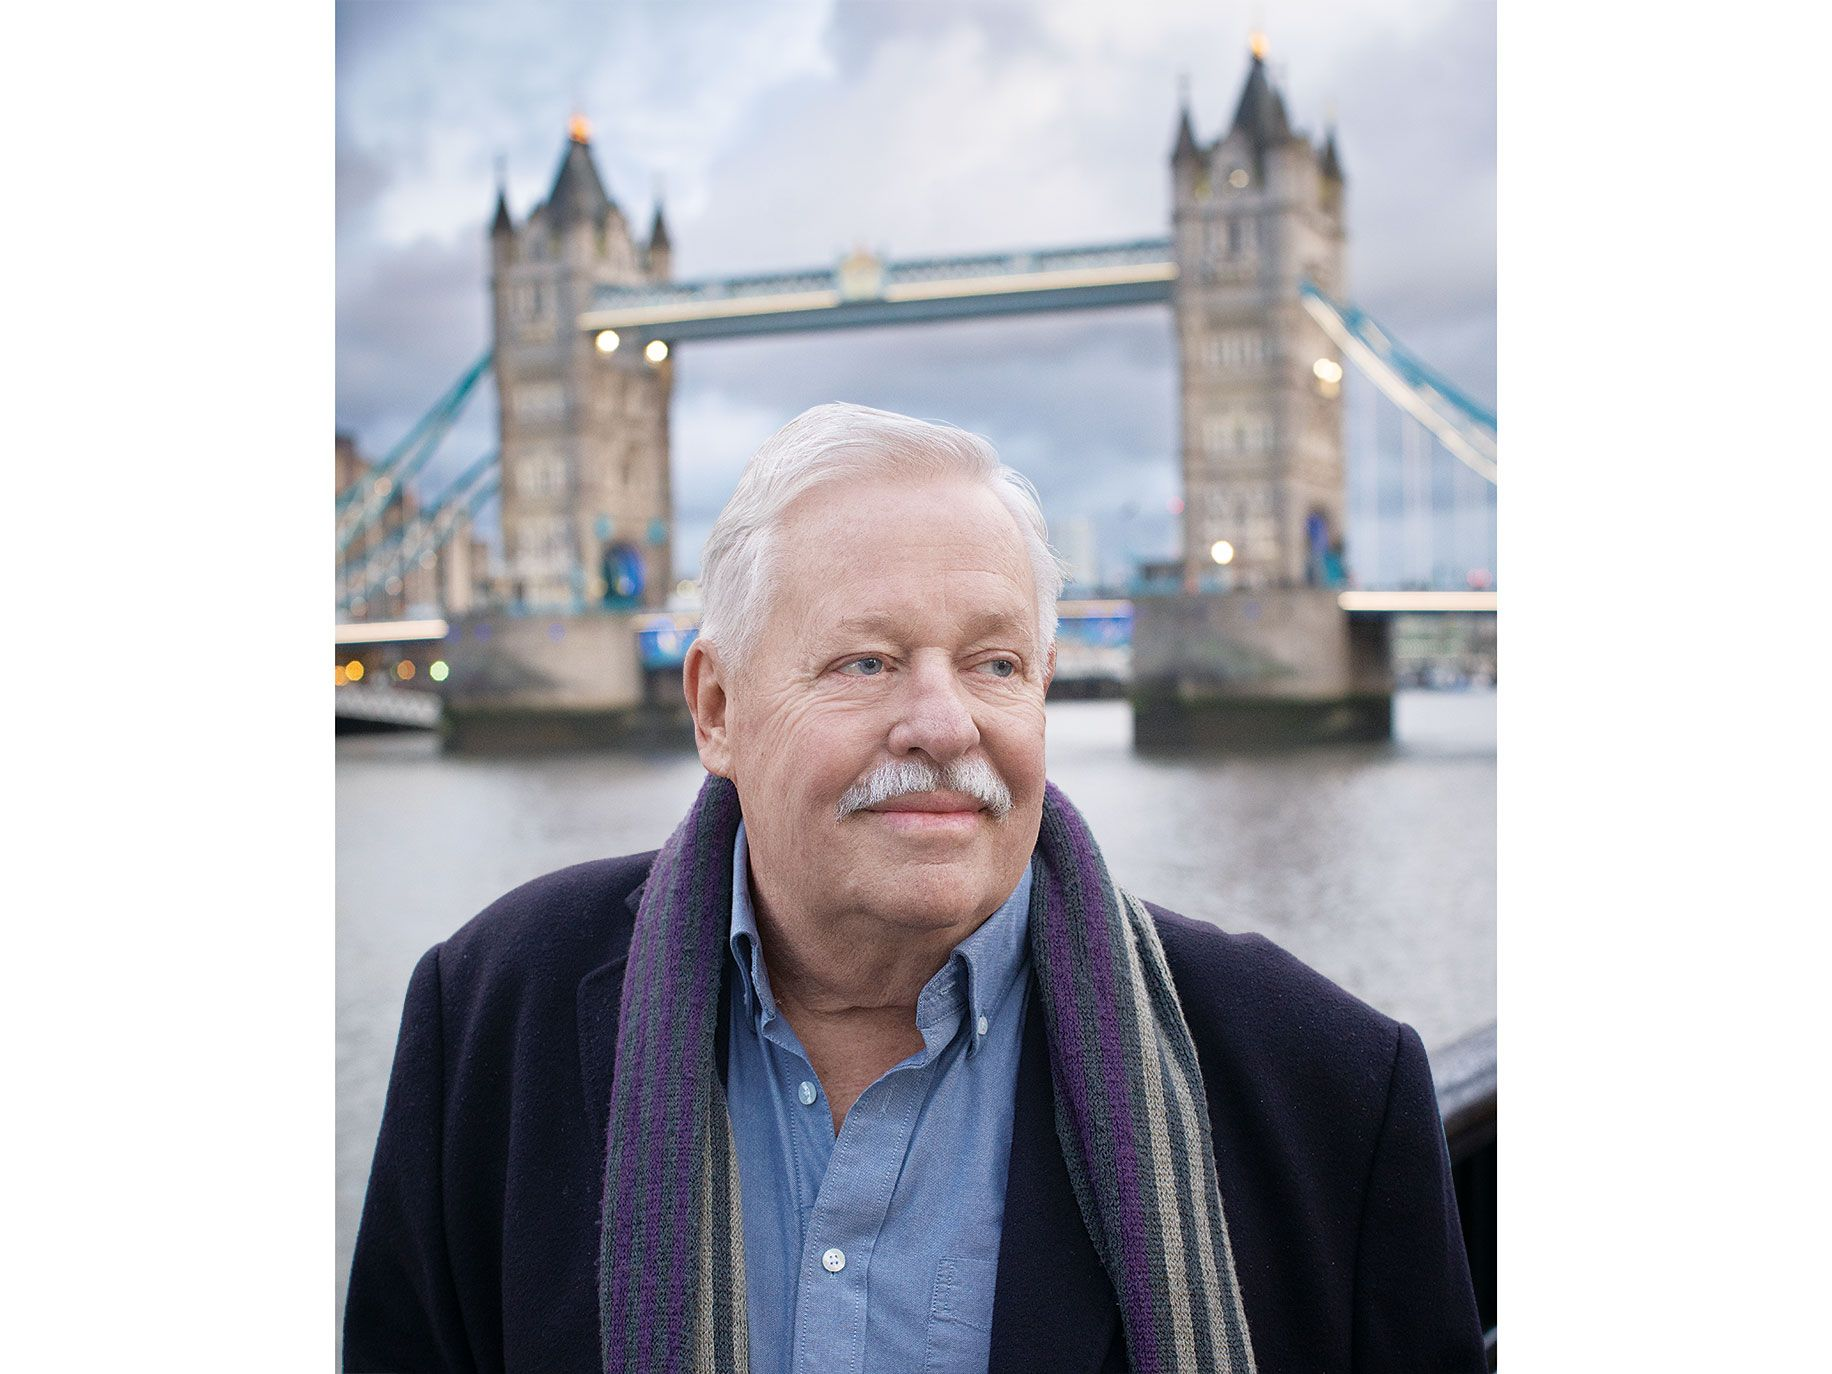 Armistead Maupin near London Bridge. The author is happily settling into life in England after leaving San Francisco.